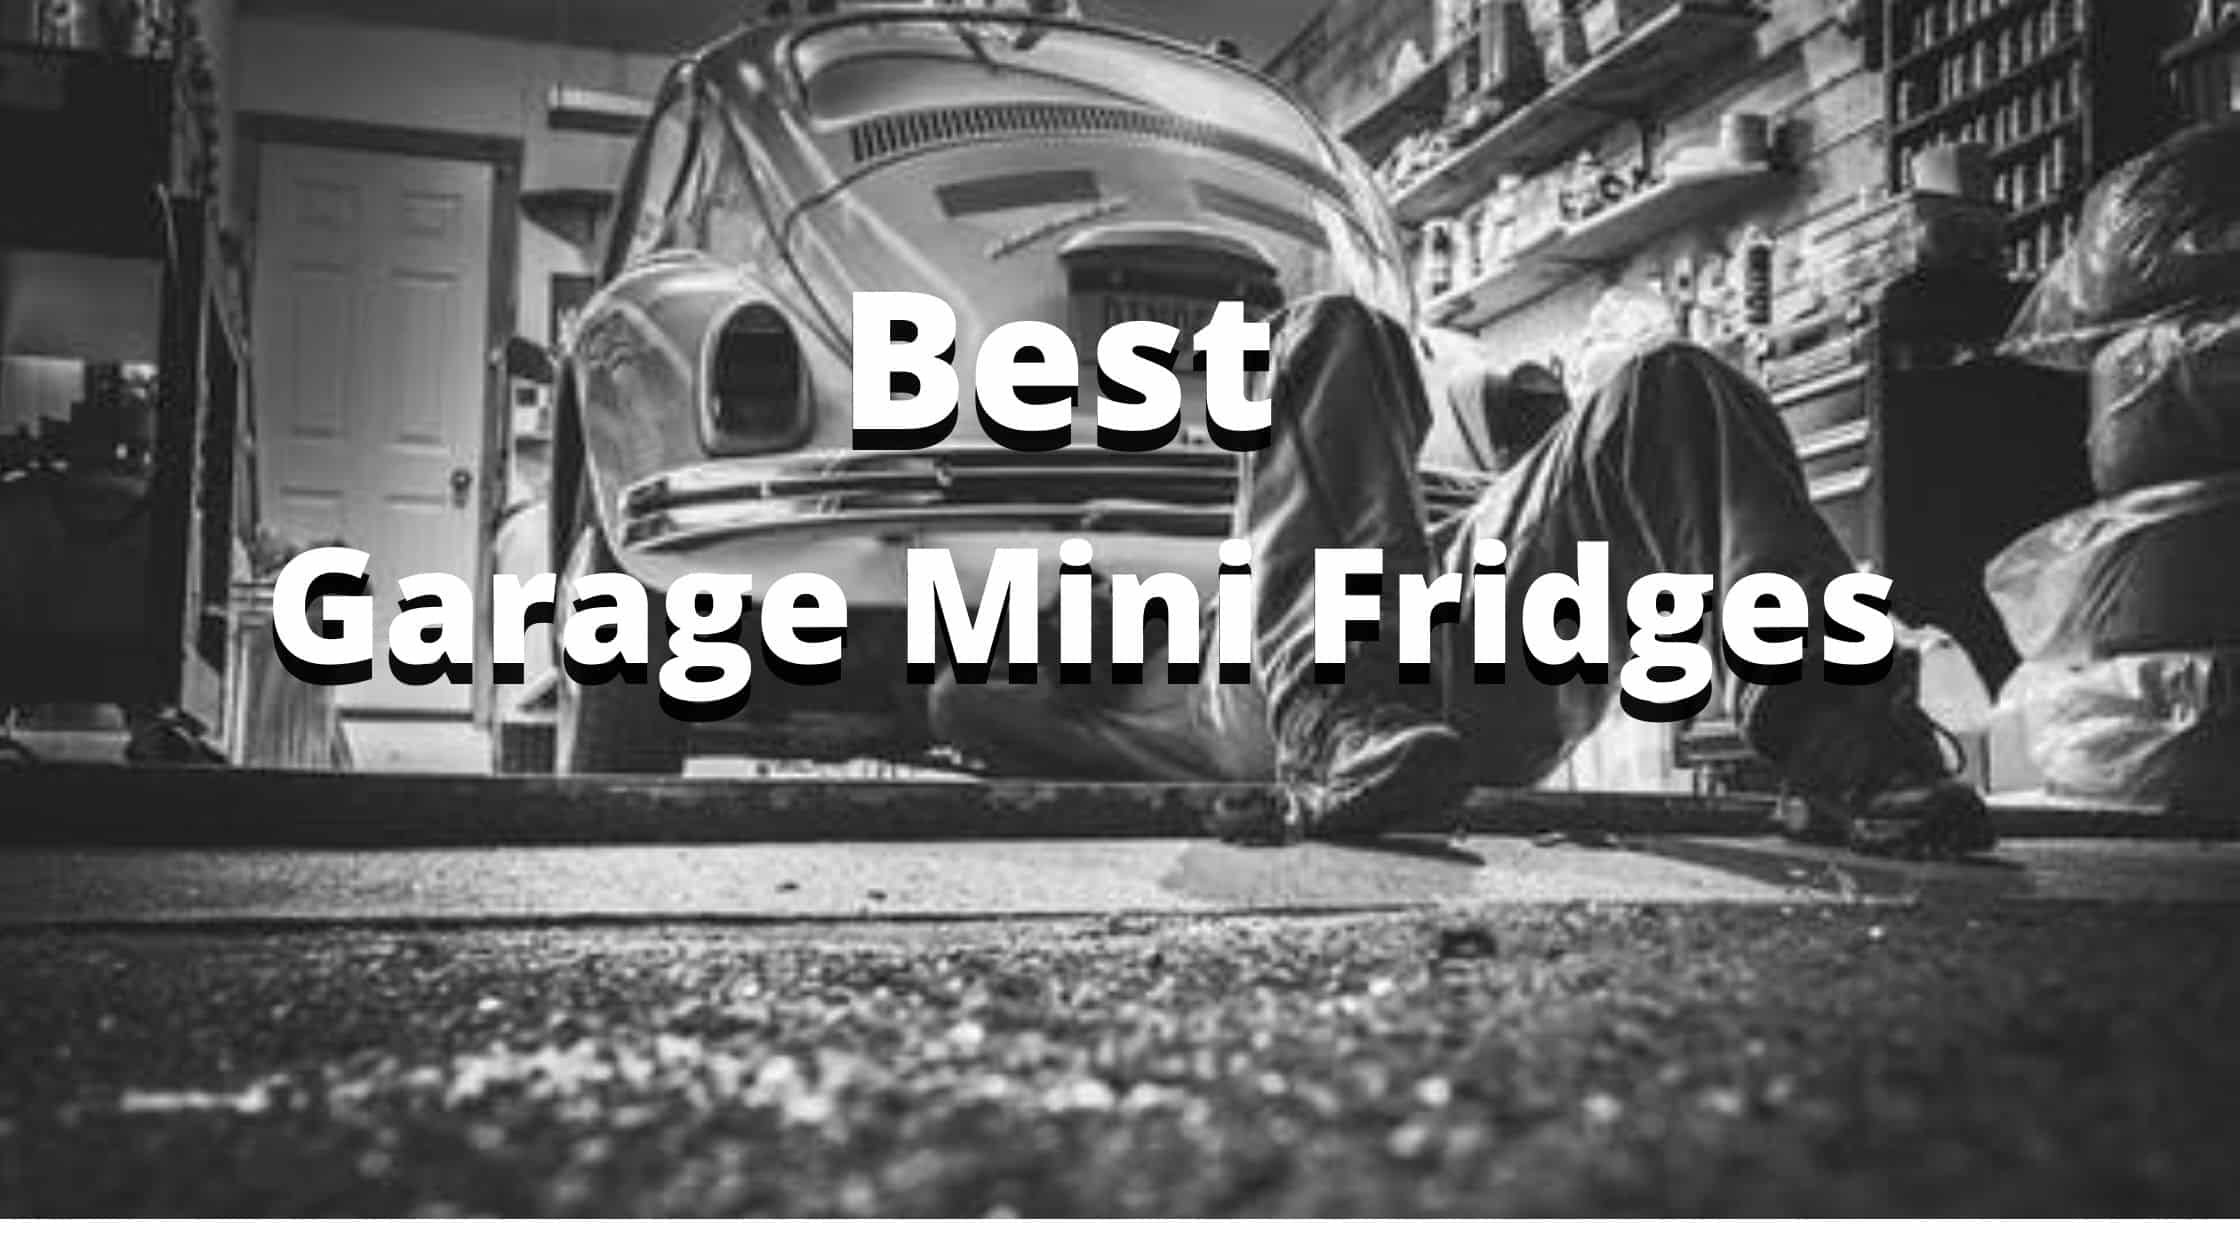 Best Garage Mini Fridges